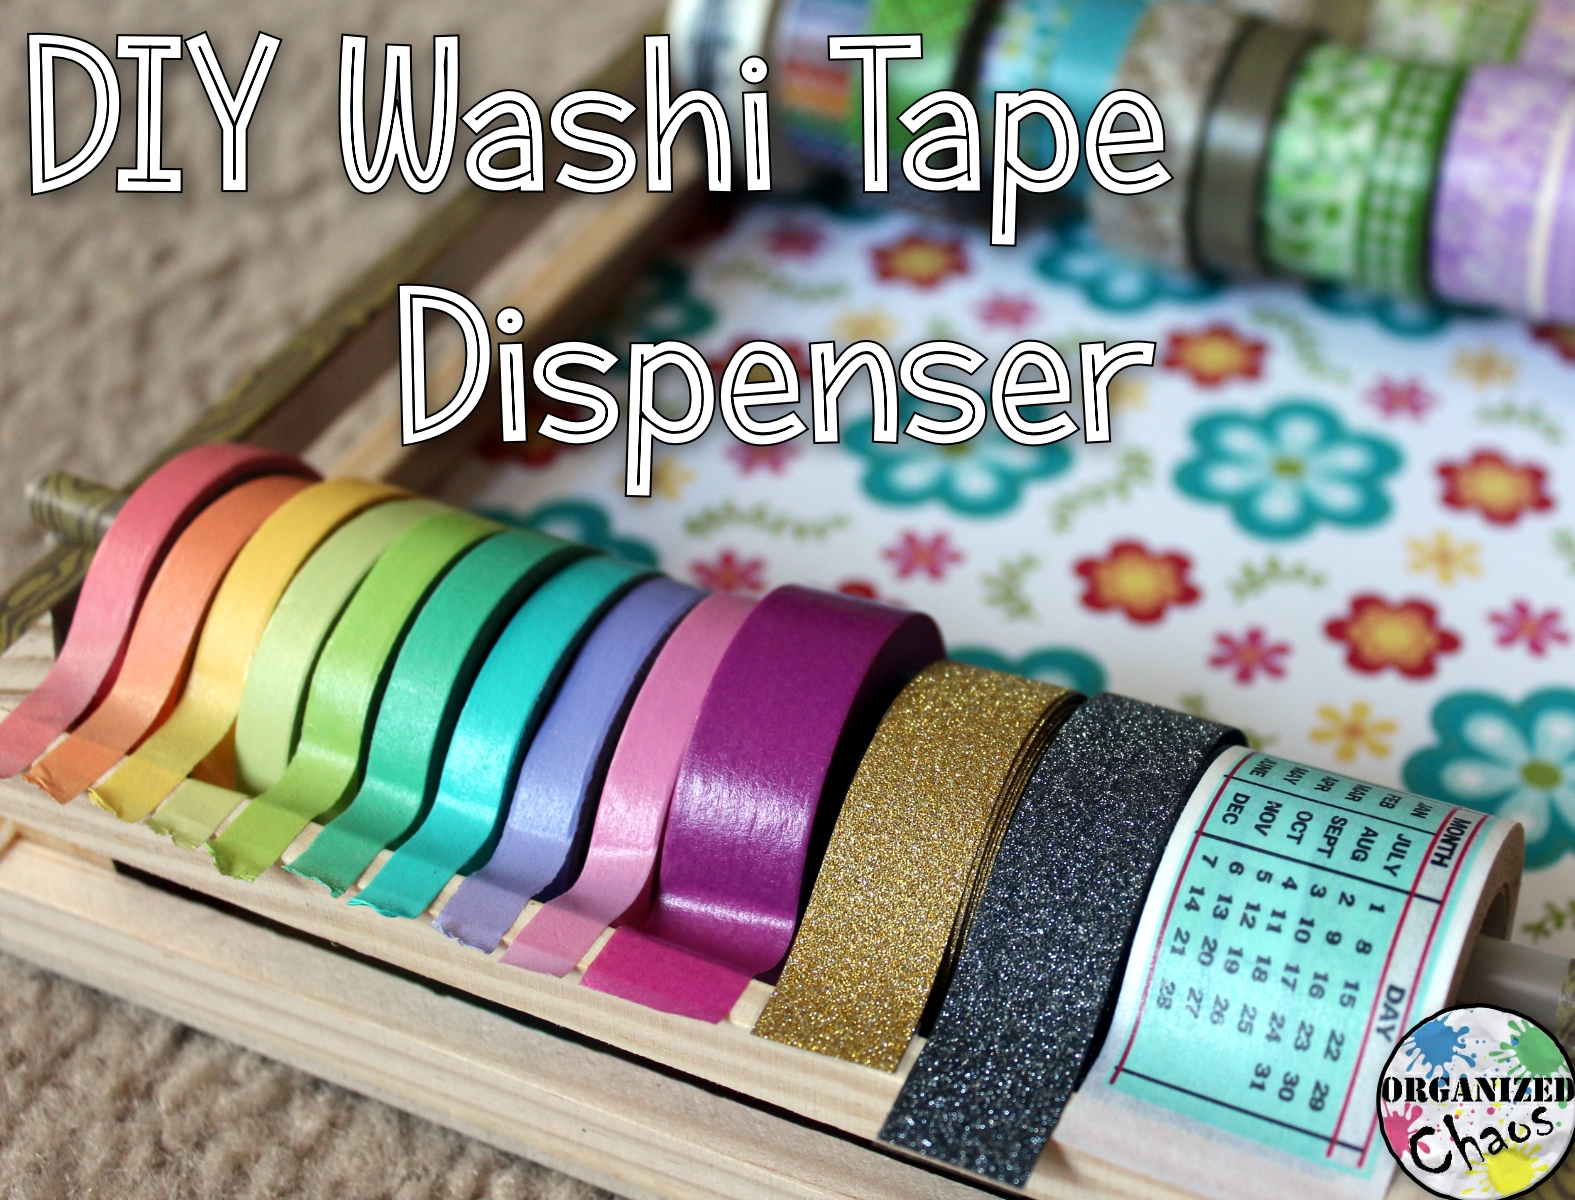 Washi Tape Diy Mommy Monday: Diy Washi Tape Dispenser | Organized Chaos